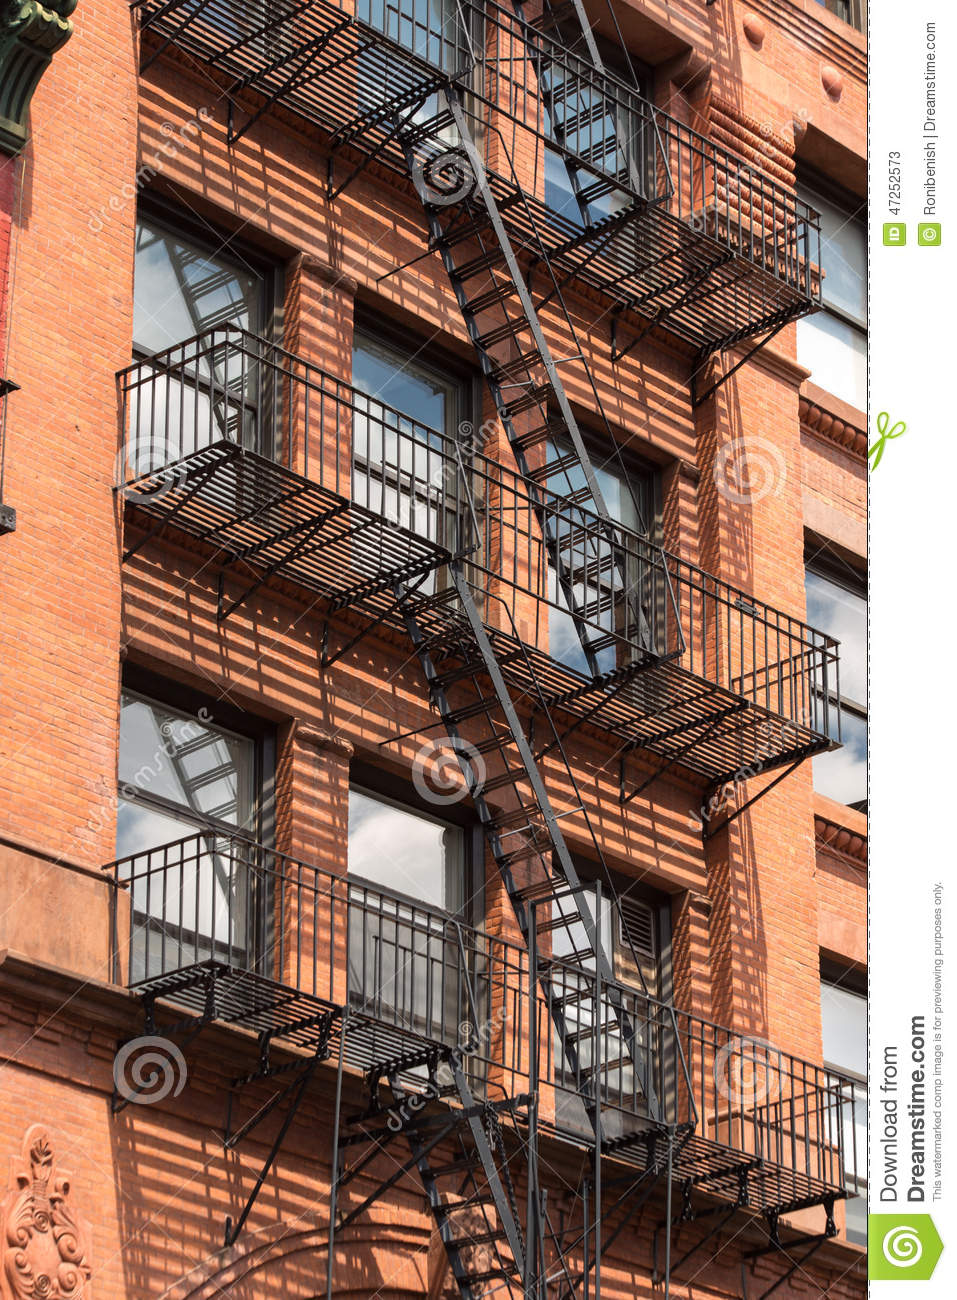 Fire Escape Stairs In Manhattan New York City, USA Stock Image   Image Of  Tourism, Fire: 47252573